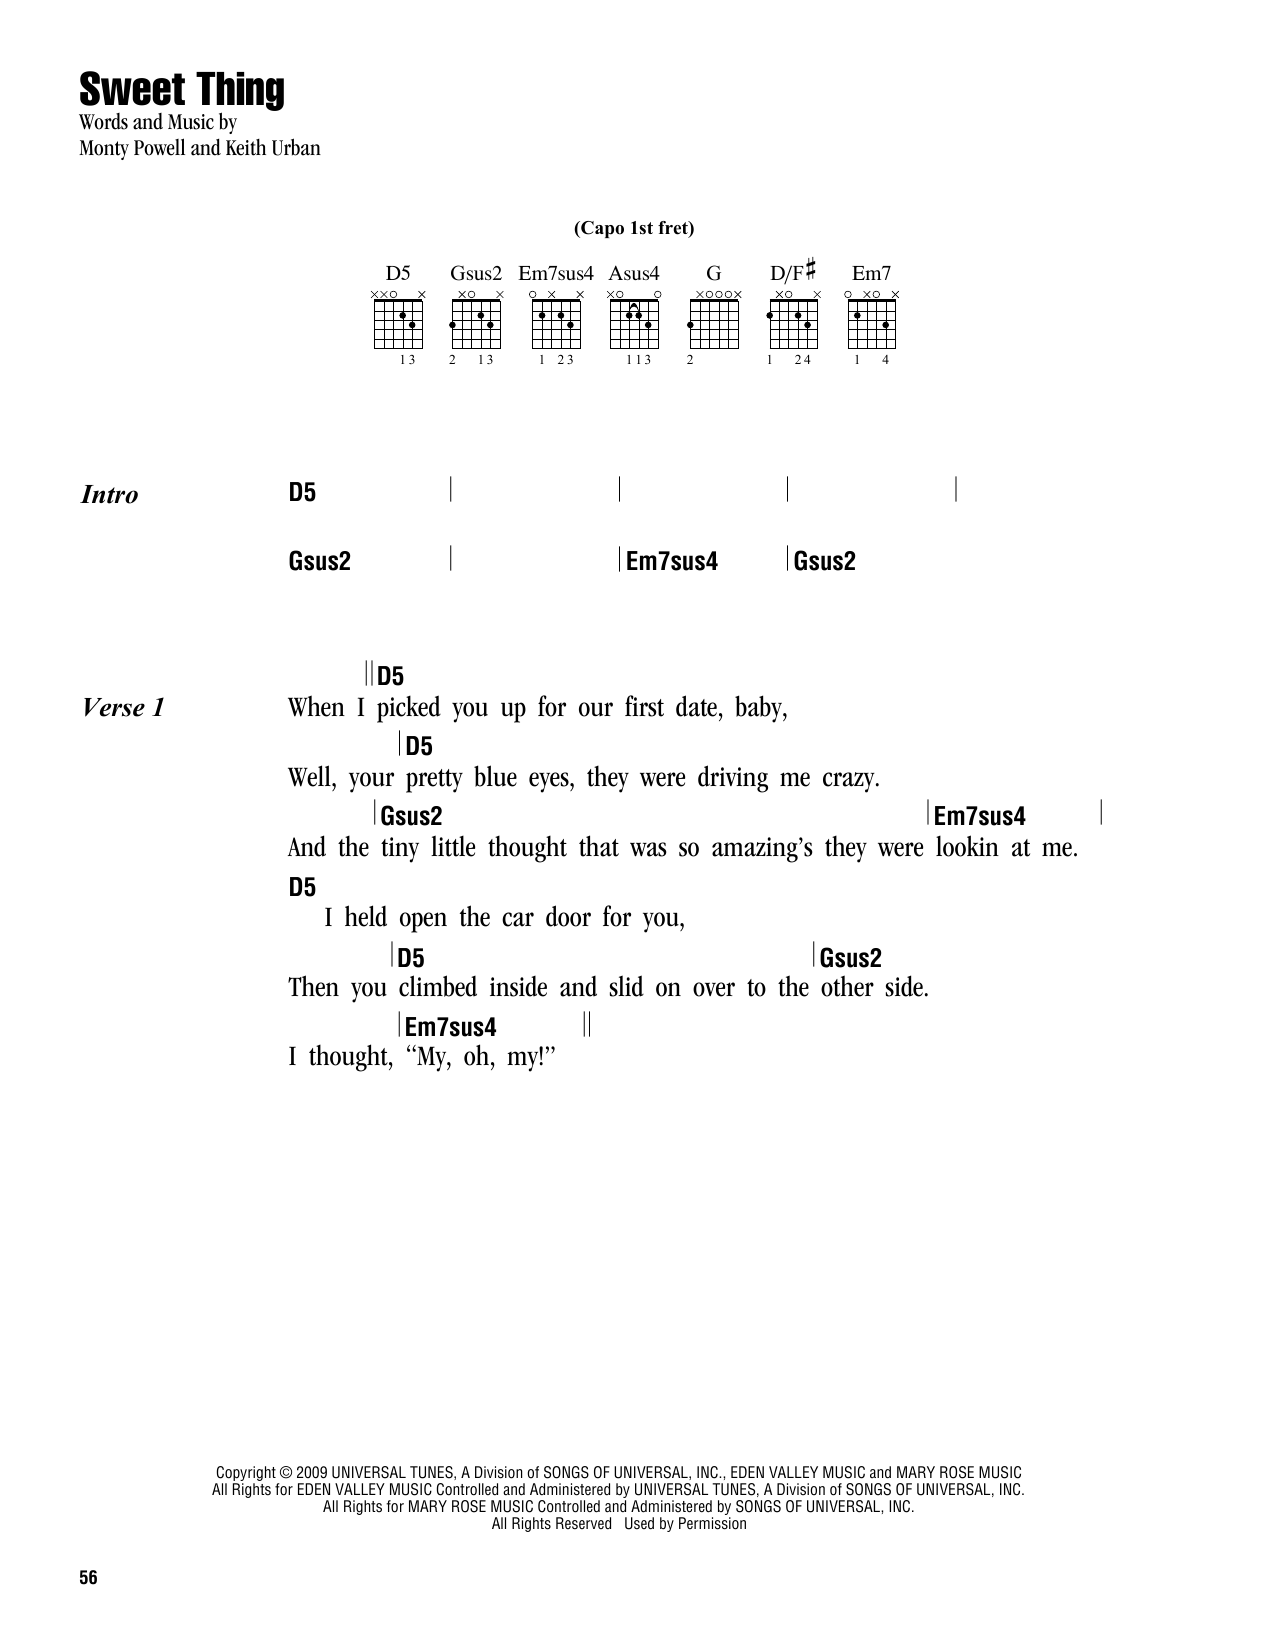 Sweet thing sheet music by keith urban lyrics chords 163286 keith urban sweet thing lyrics chords hexwebz Image collections